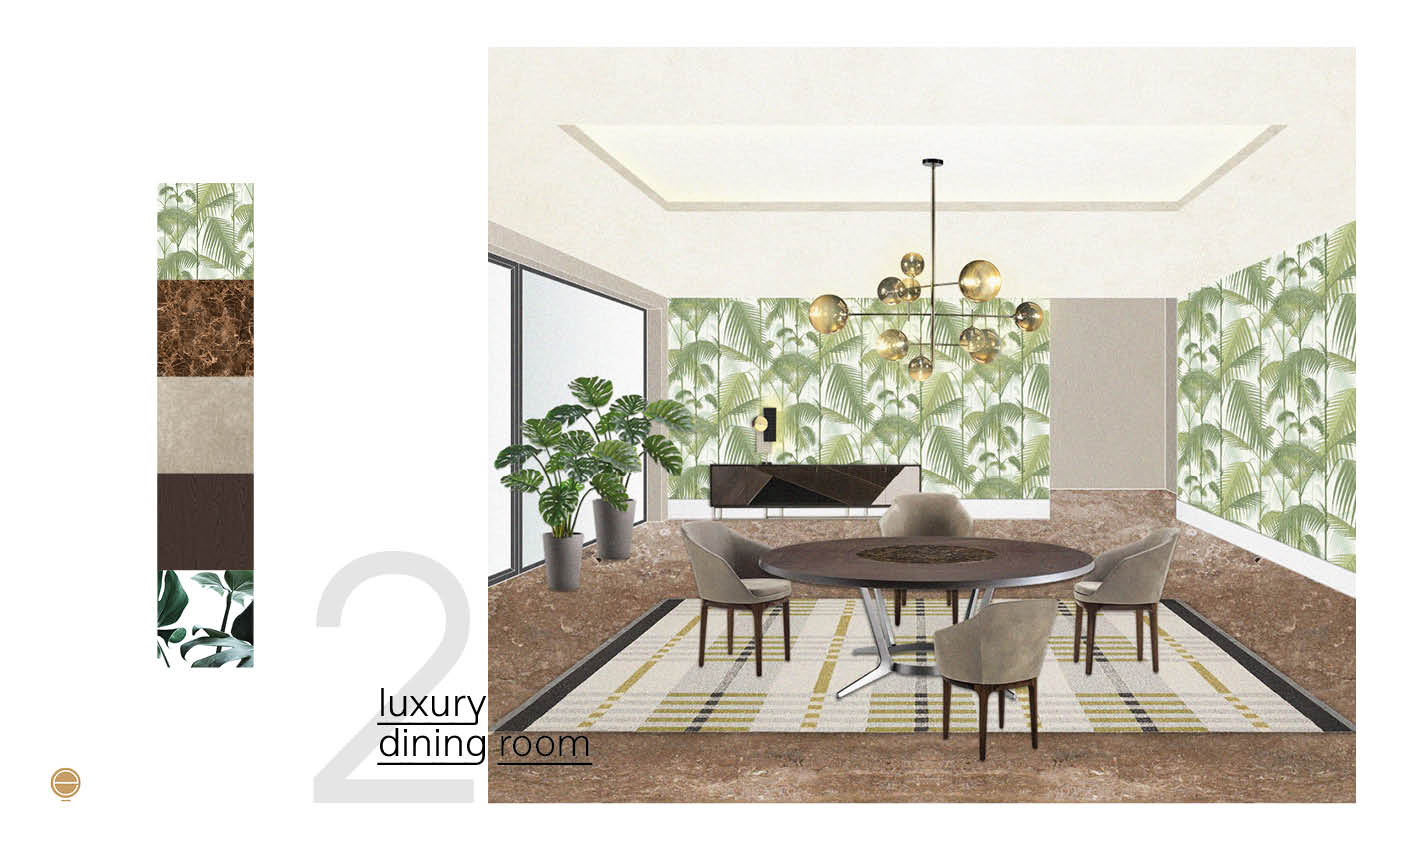 tropical luxury dining room design inspiration